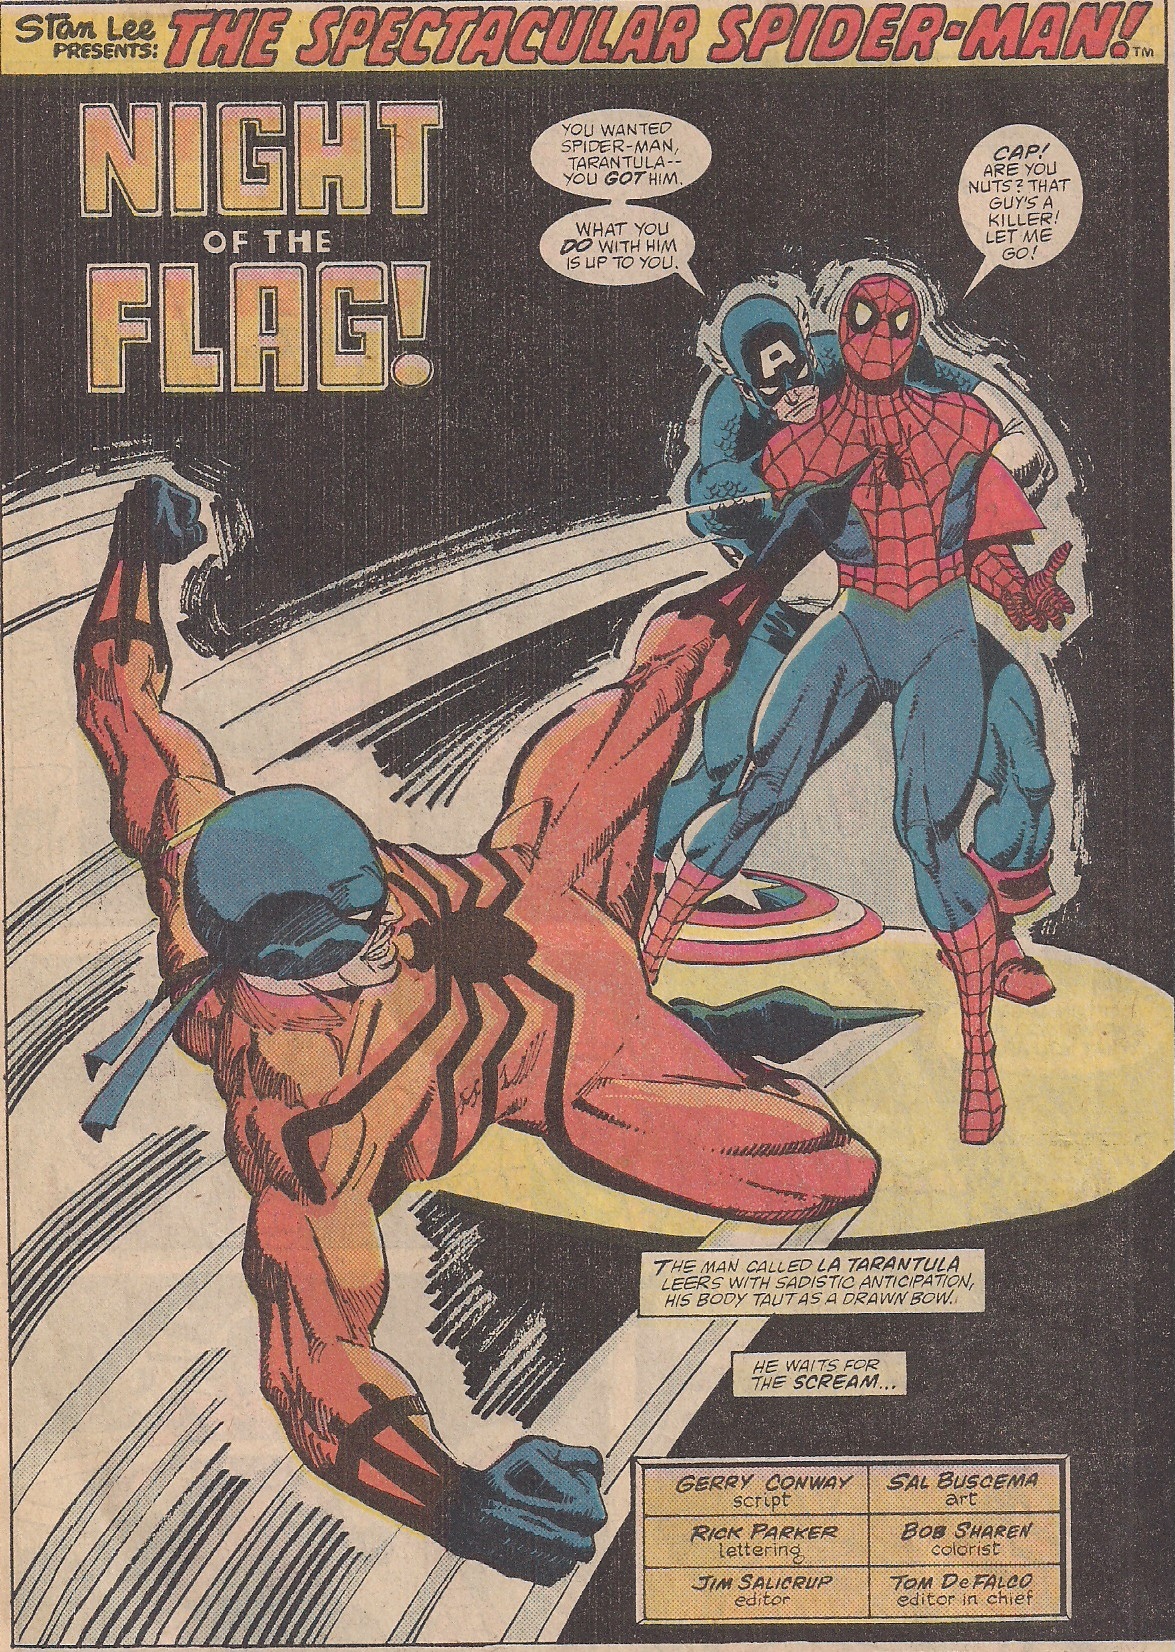 We've hit full wrestling territory this issue, foreign heel with a spiked shoe and a heel turn from Captain America!